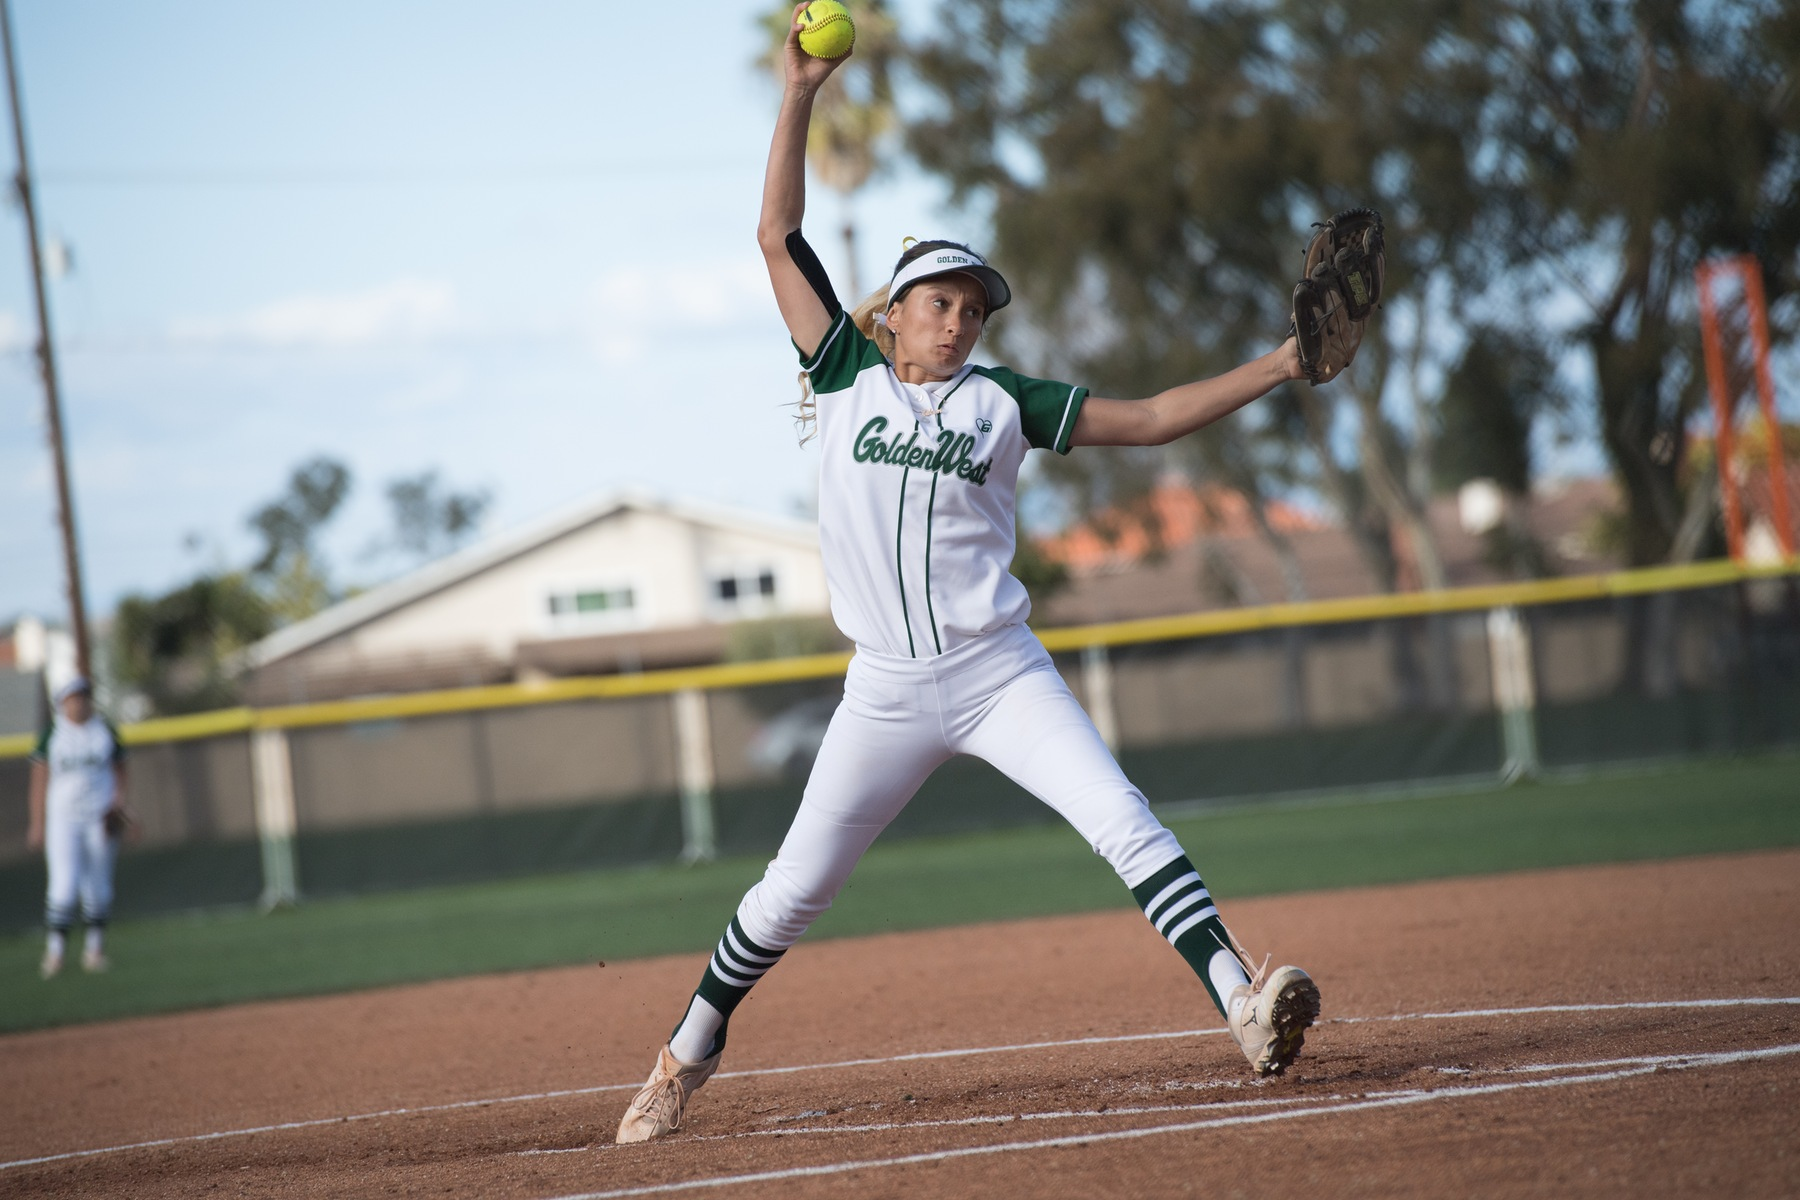 Softball: First Inning Errors Lead to Tough Loss